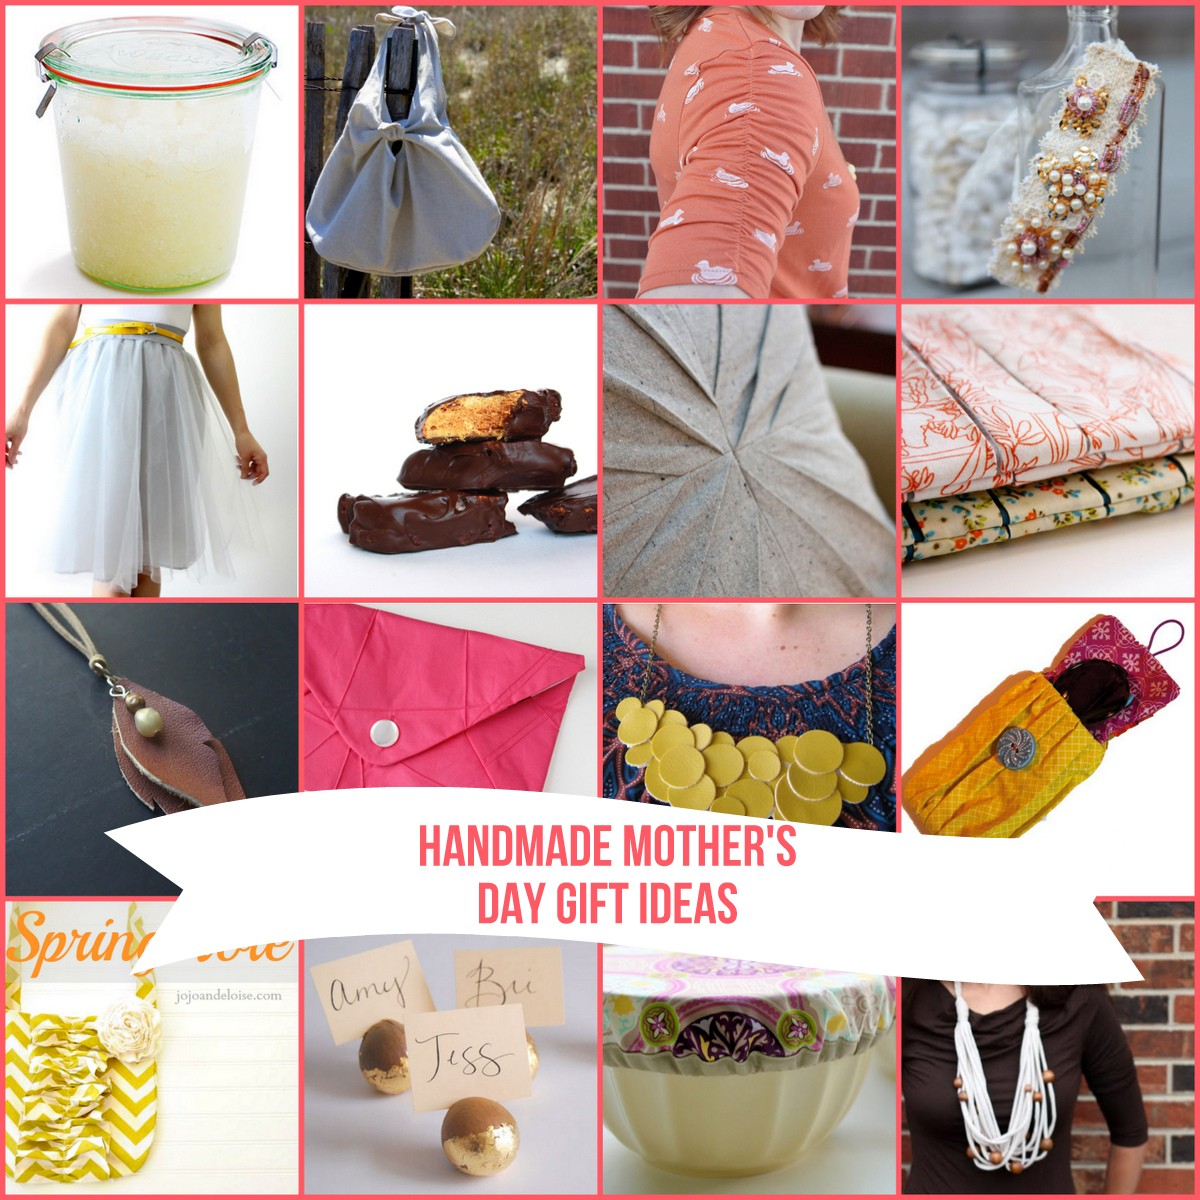 32 DIY mother's day gift ideas